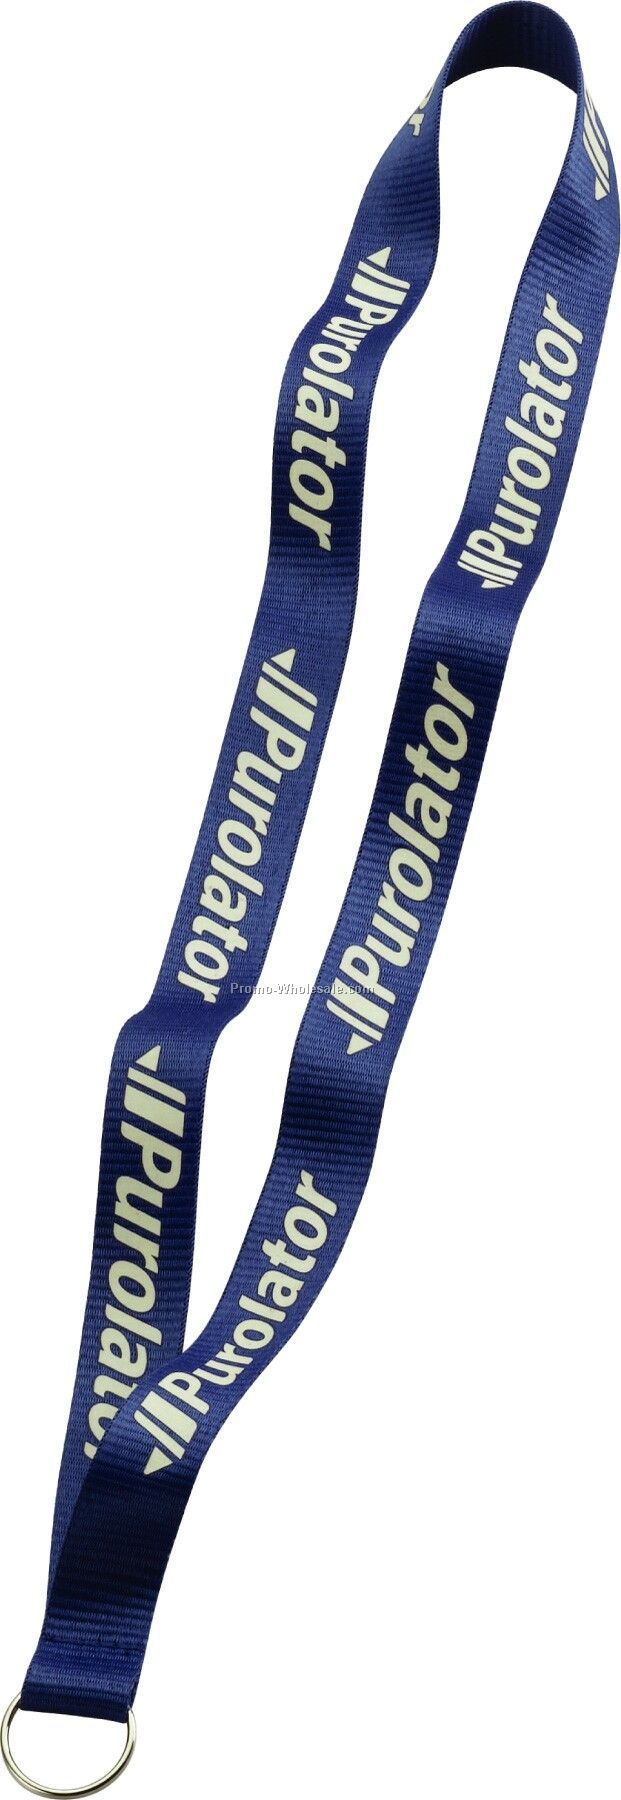 """3/4"""" Imported Polyester Glow Imprint Lanyard With Sewn Split Ring"""